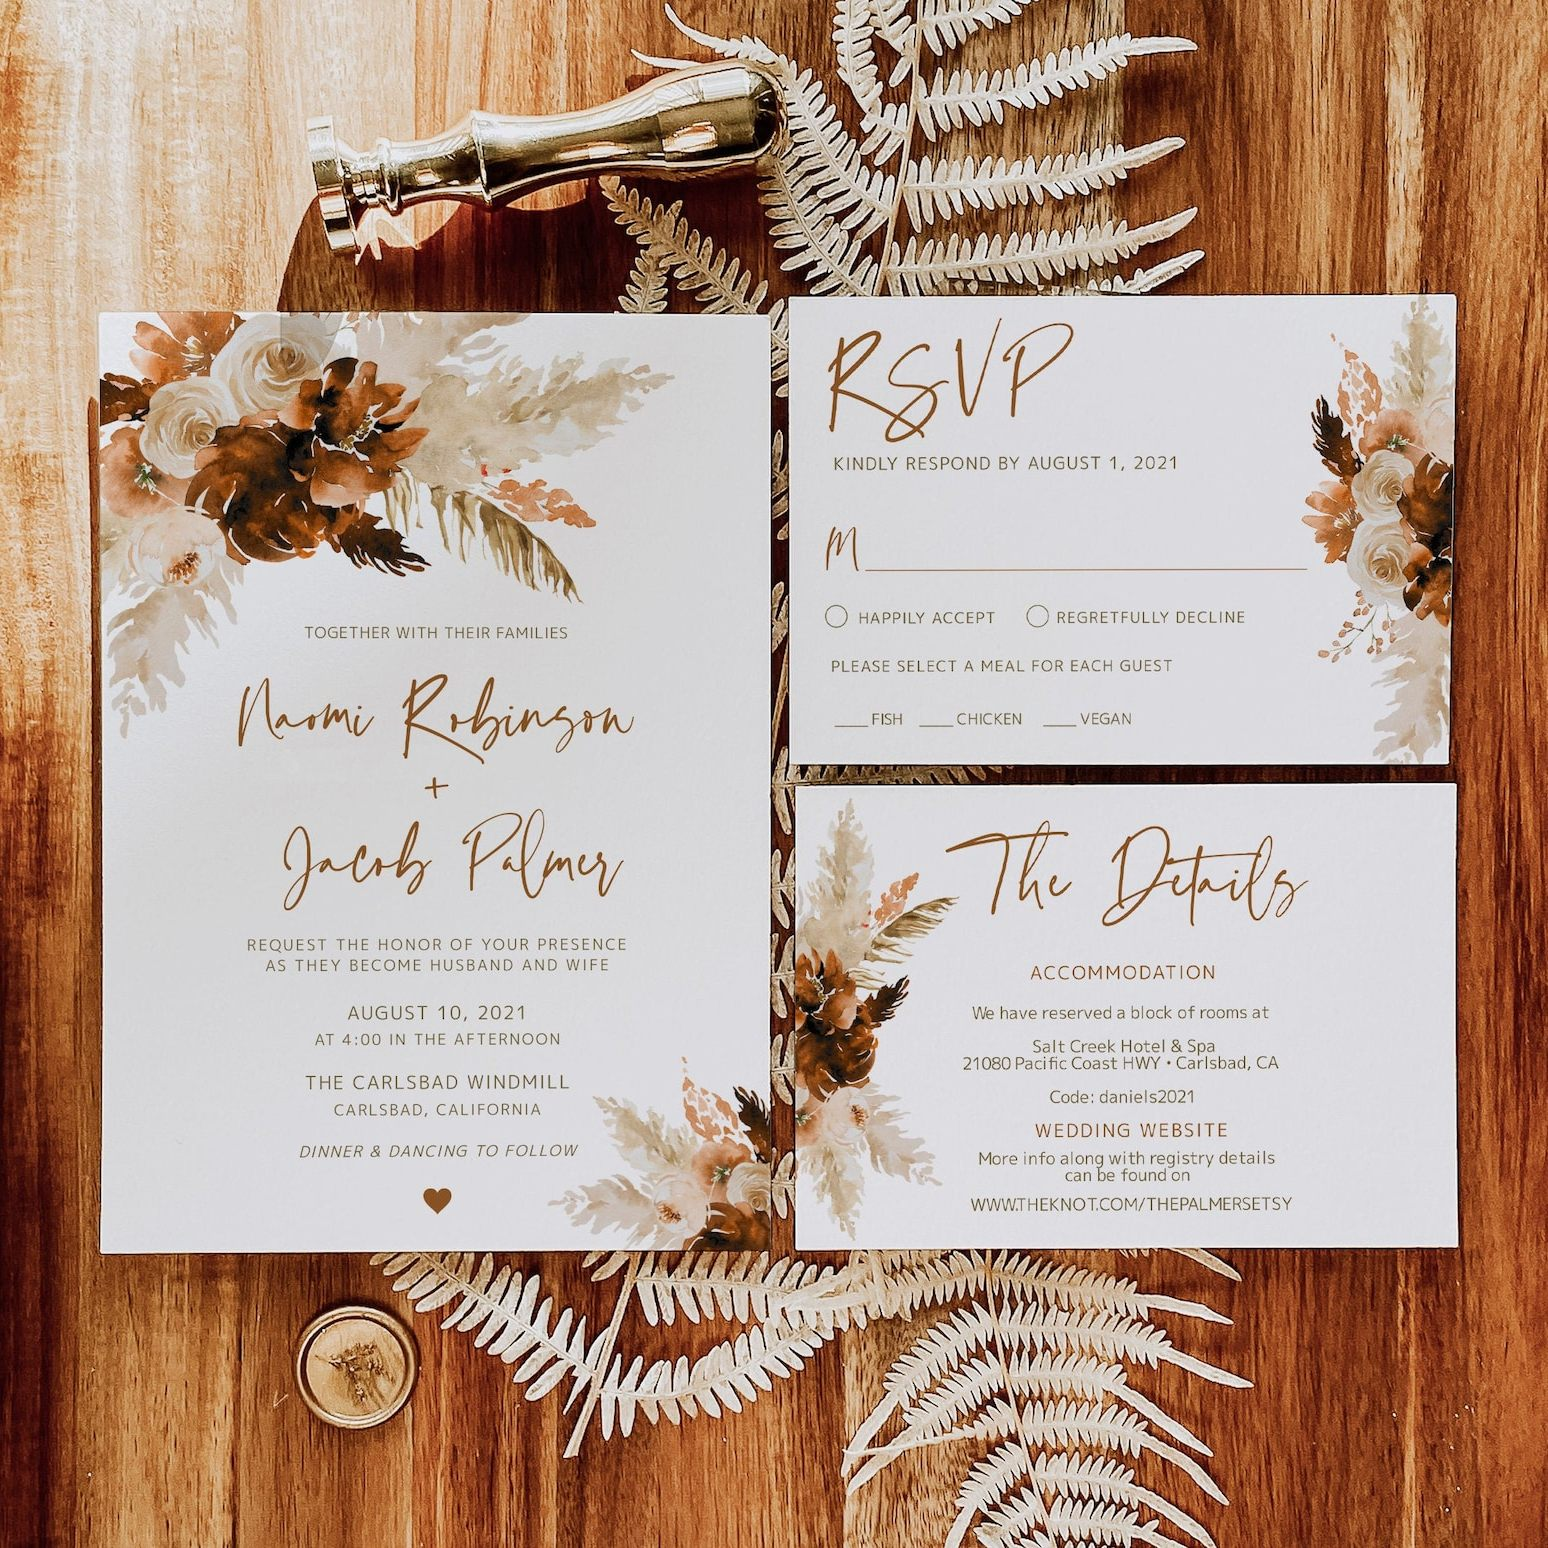 Dried flowers and pampas grass rustic wedding invitation